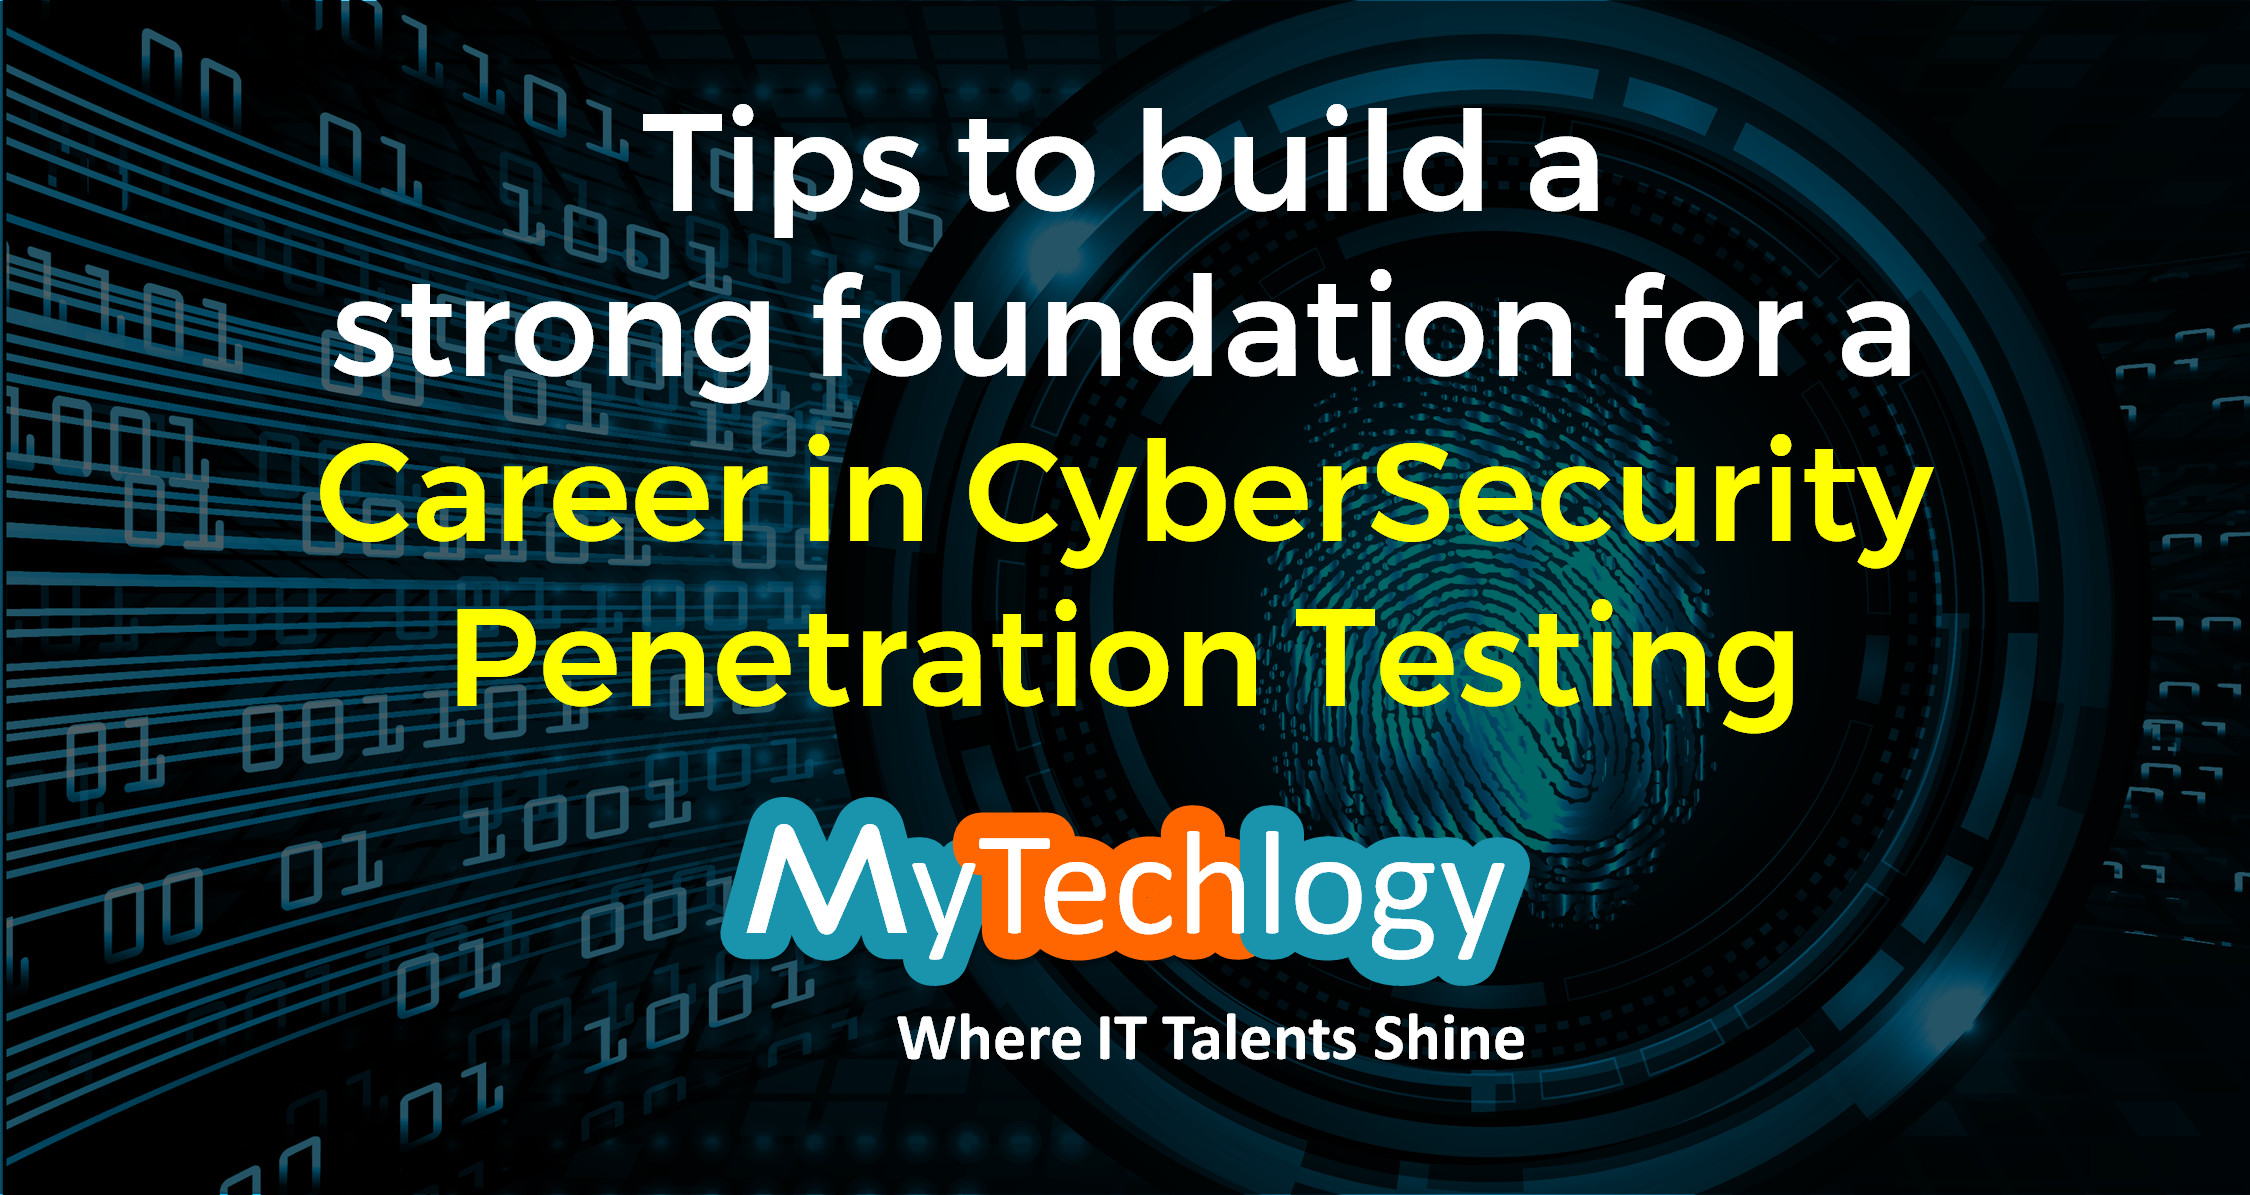 How to build a strong foundation for a Career in CyberSecurity Penetration Testing? - Image 1